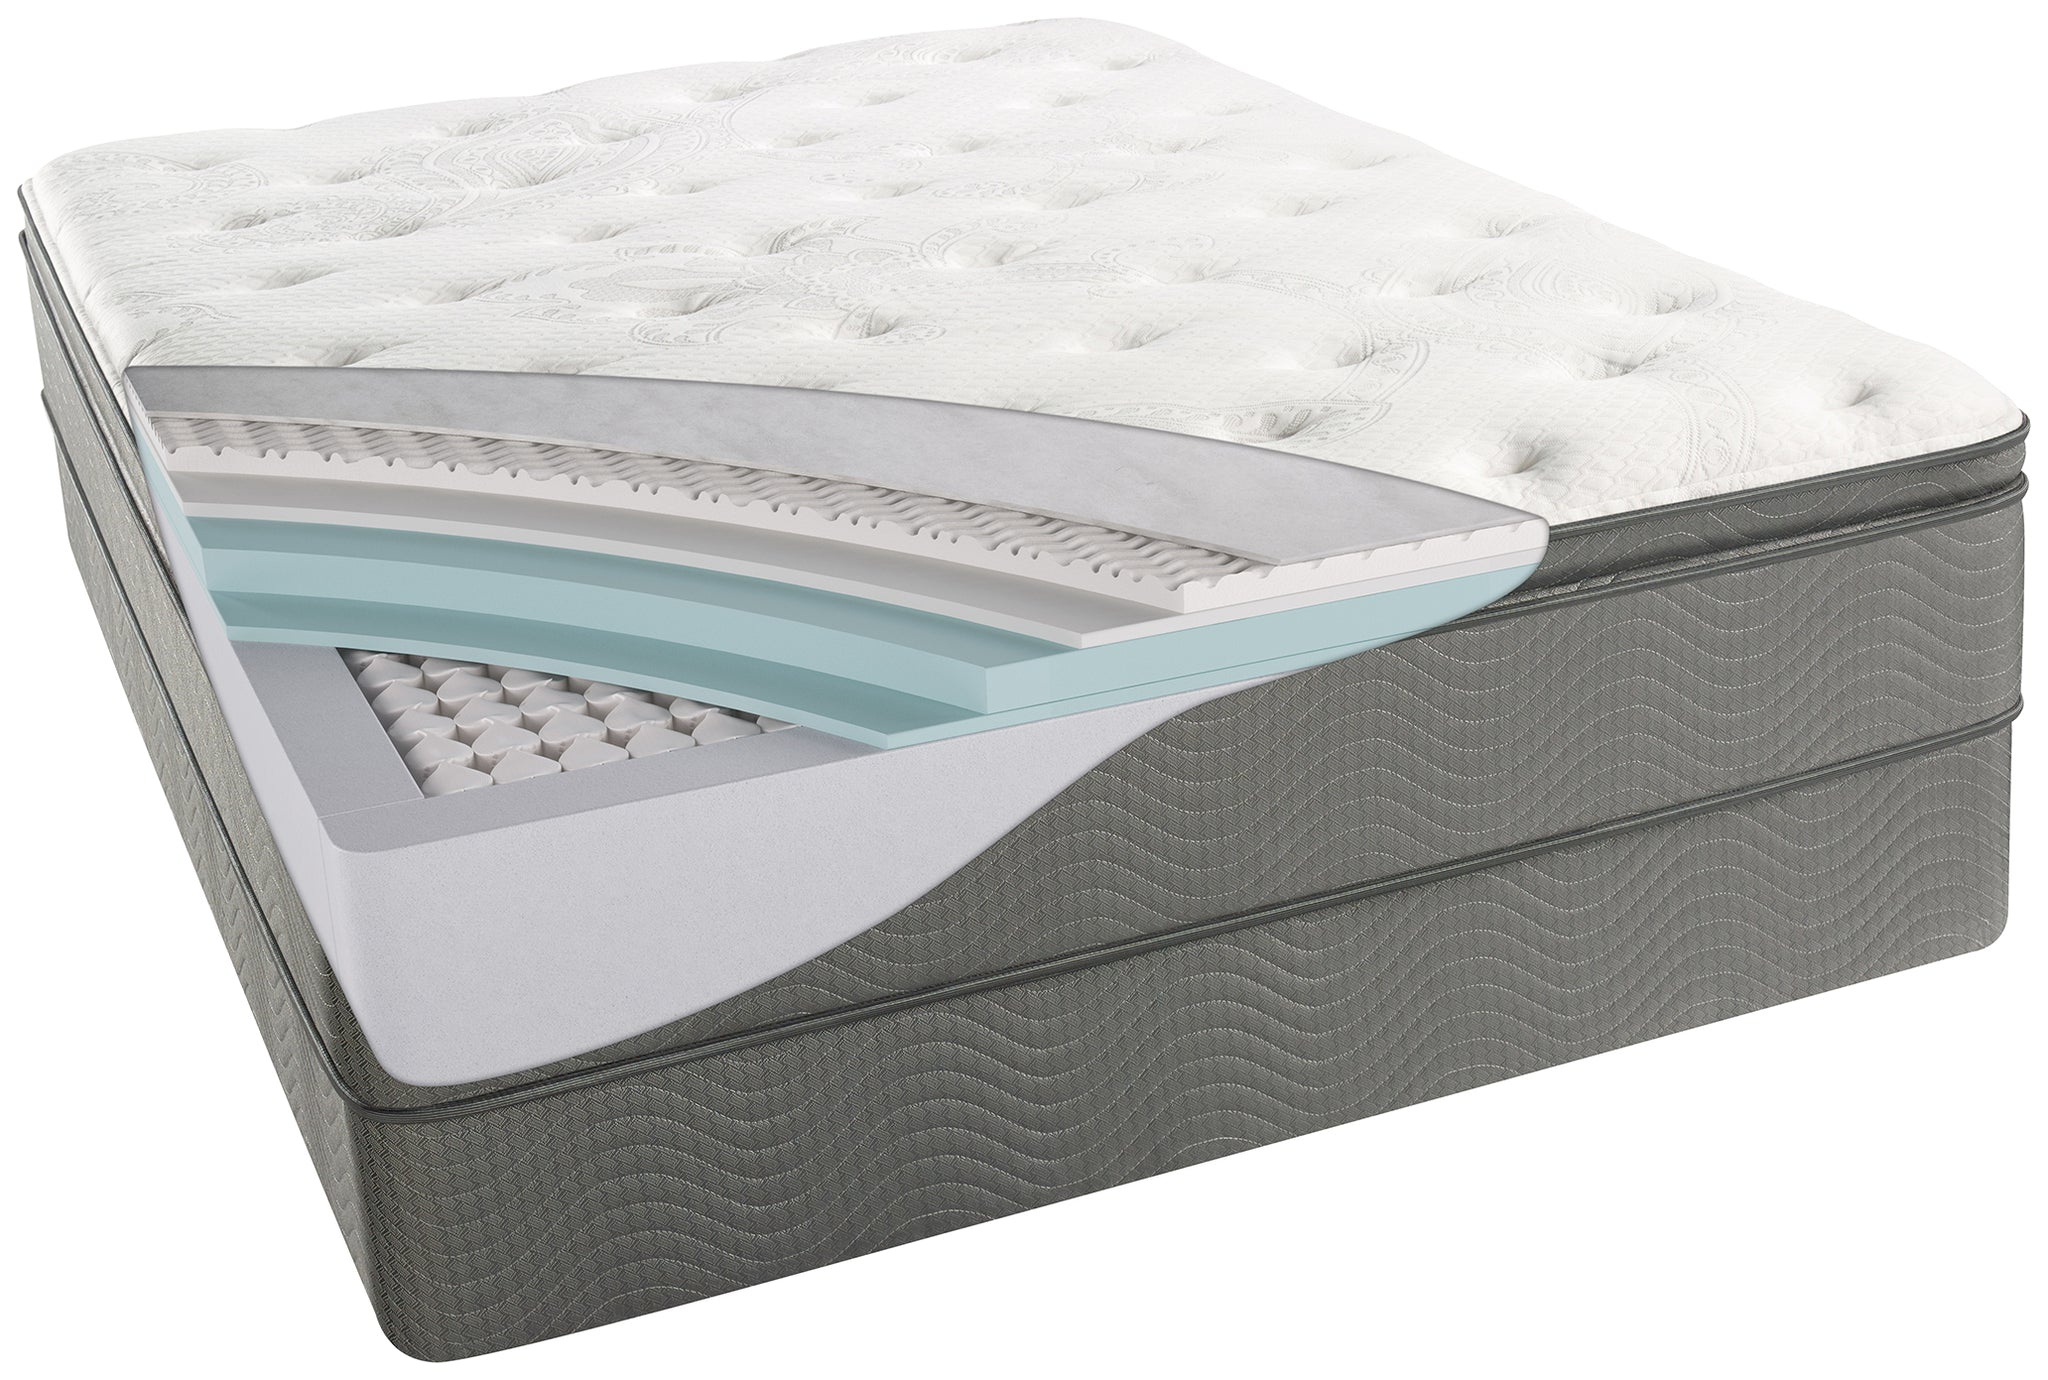 your mattress to residence pillow great concept topper regarding top tromsdalen ikea bedroom queen applied reviews